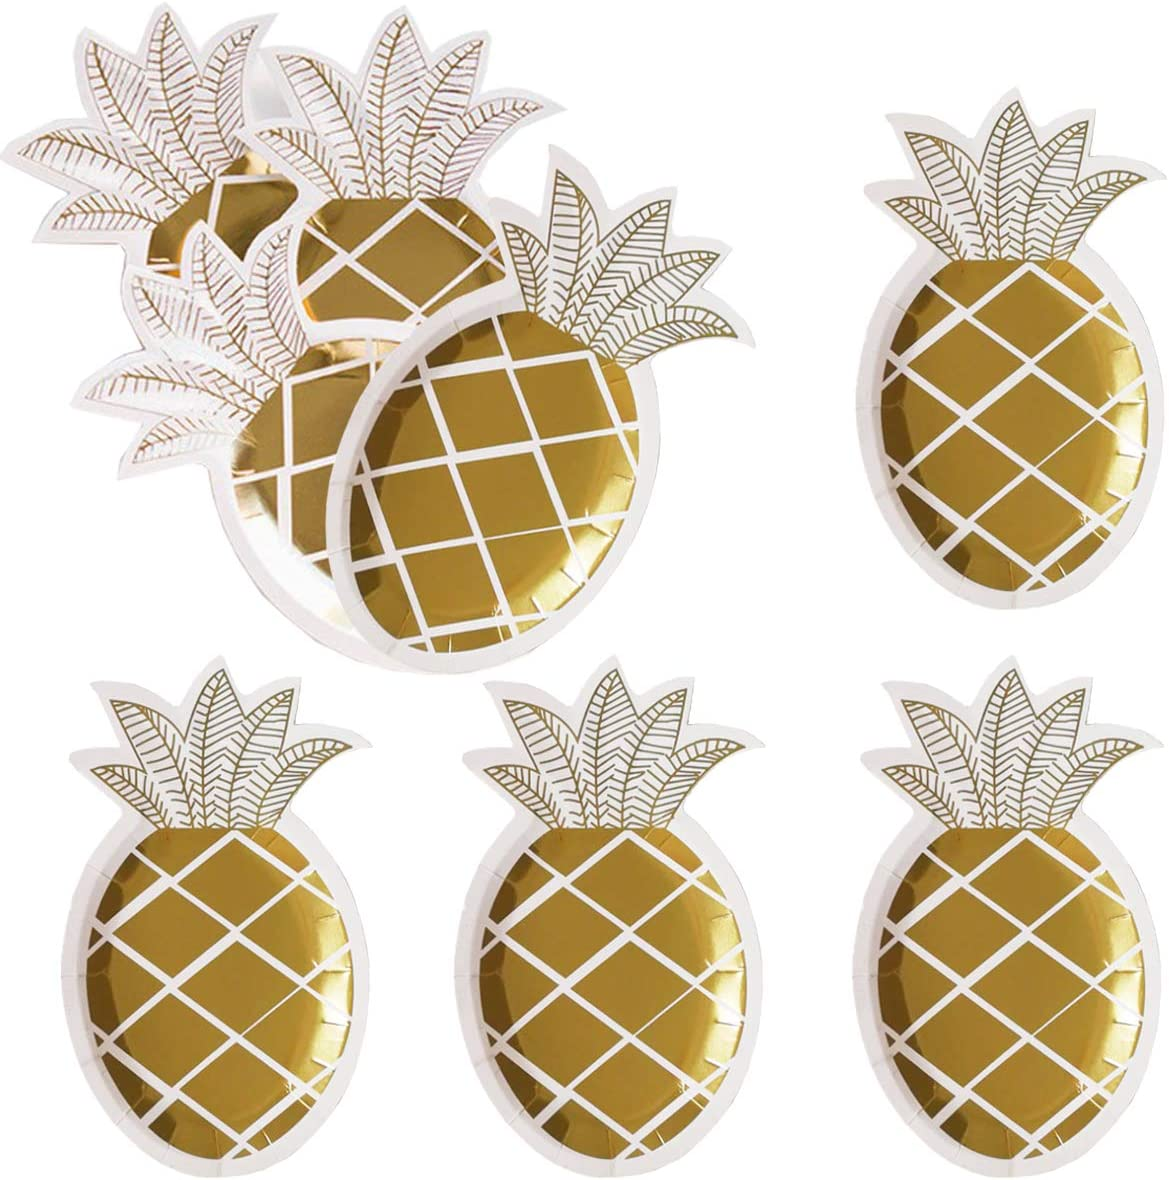 Personalized Pineapple Plate Personalized Plate Polymer Plate dishwasher safe yellow watercolor pineapples personalized kids plate